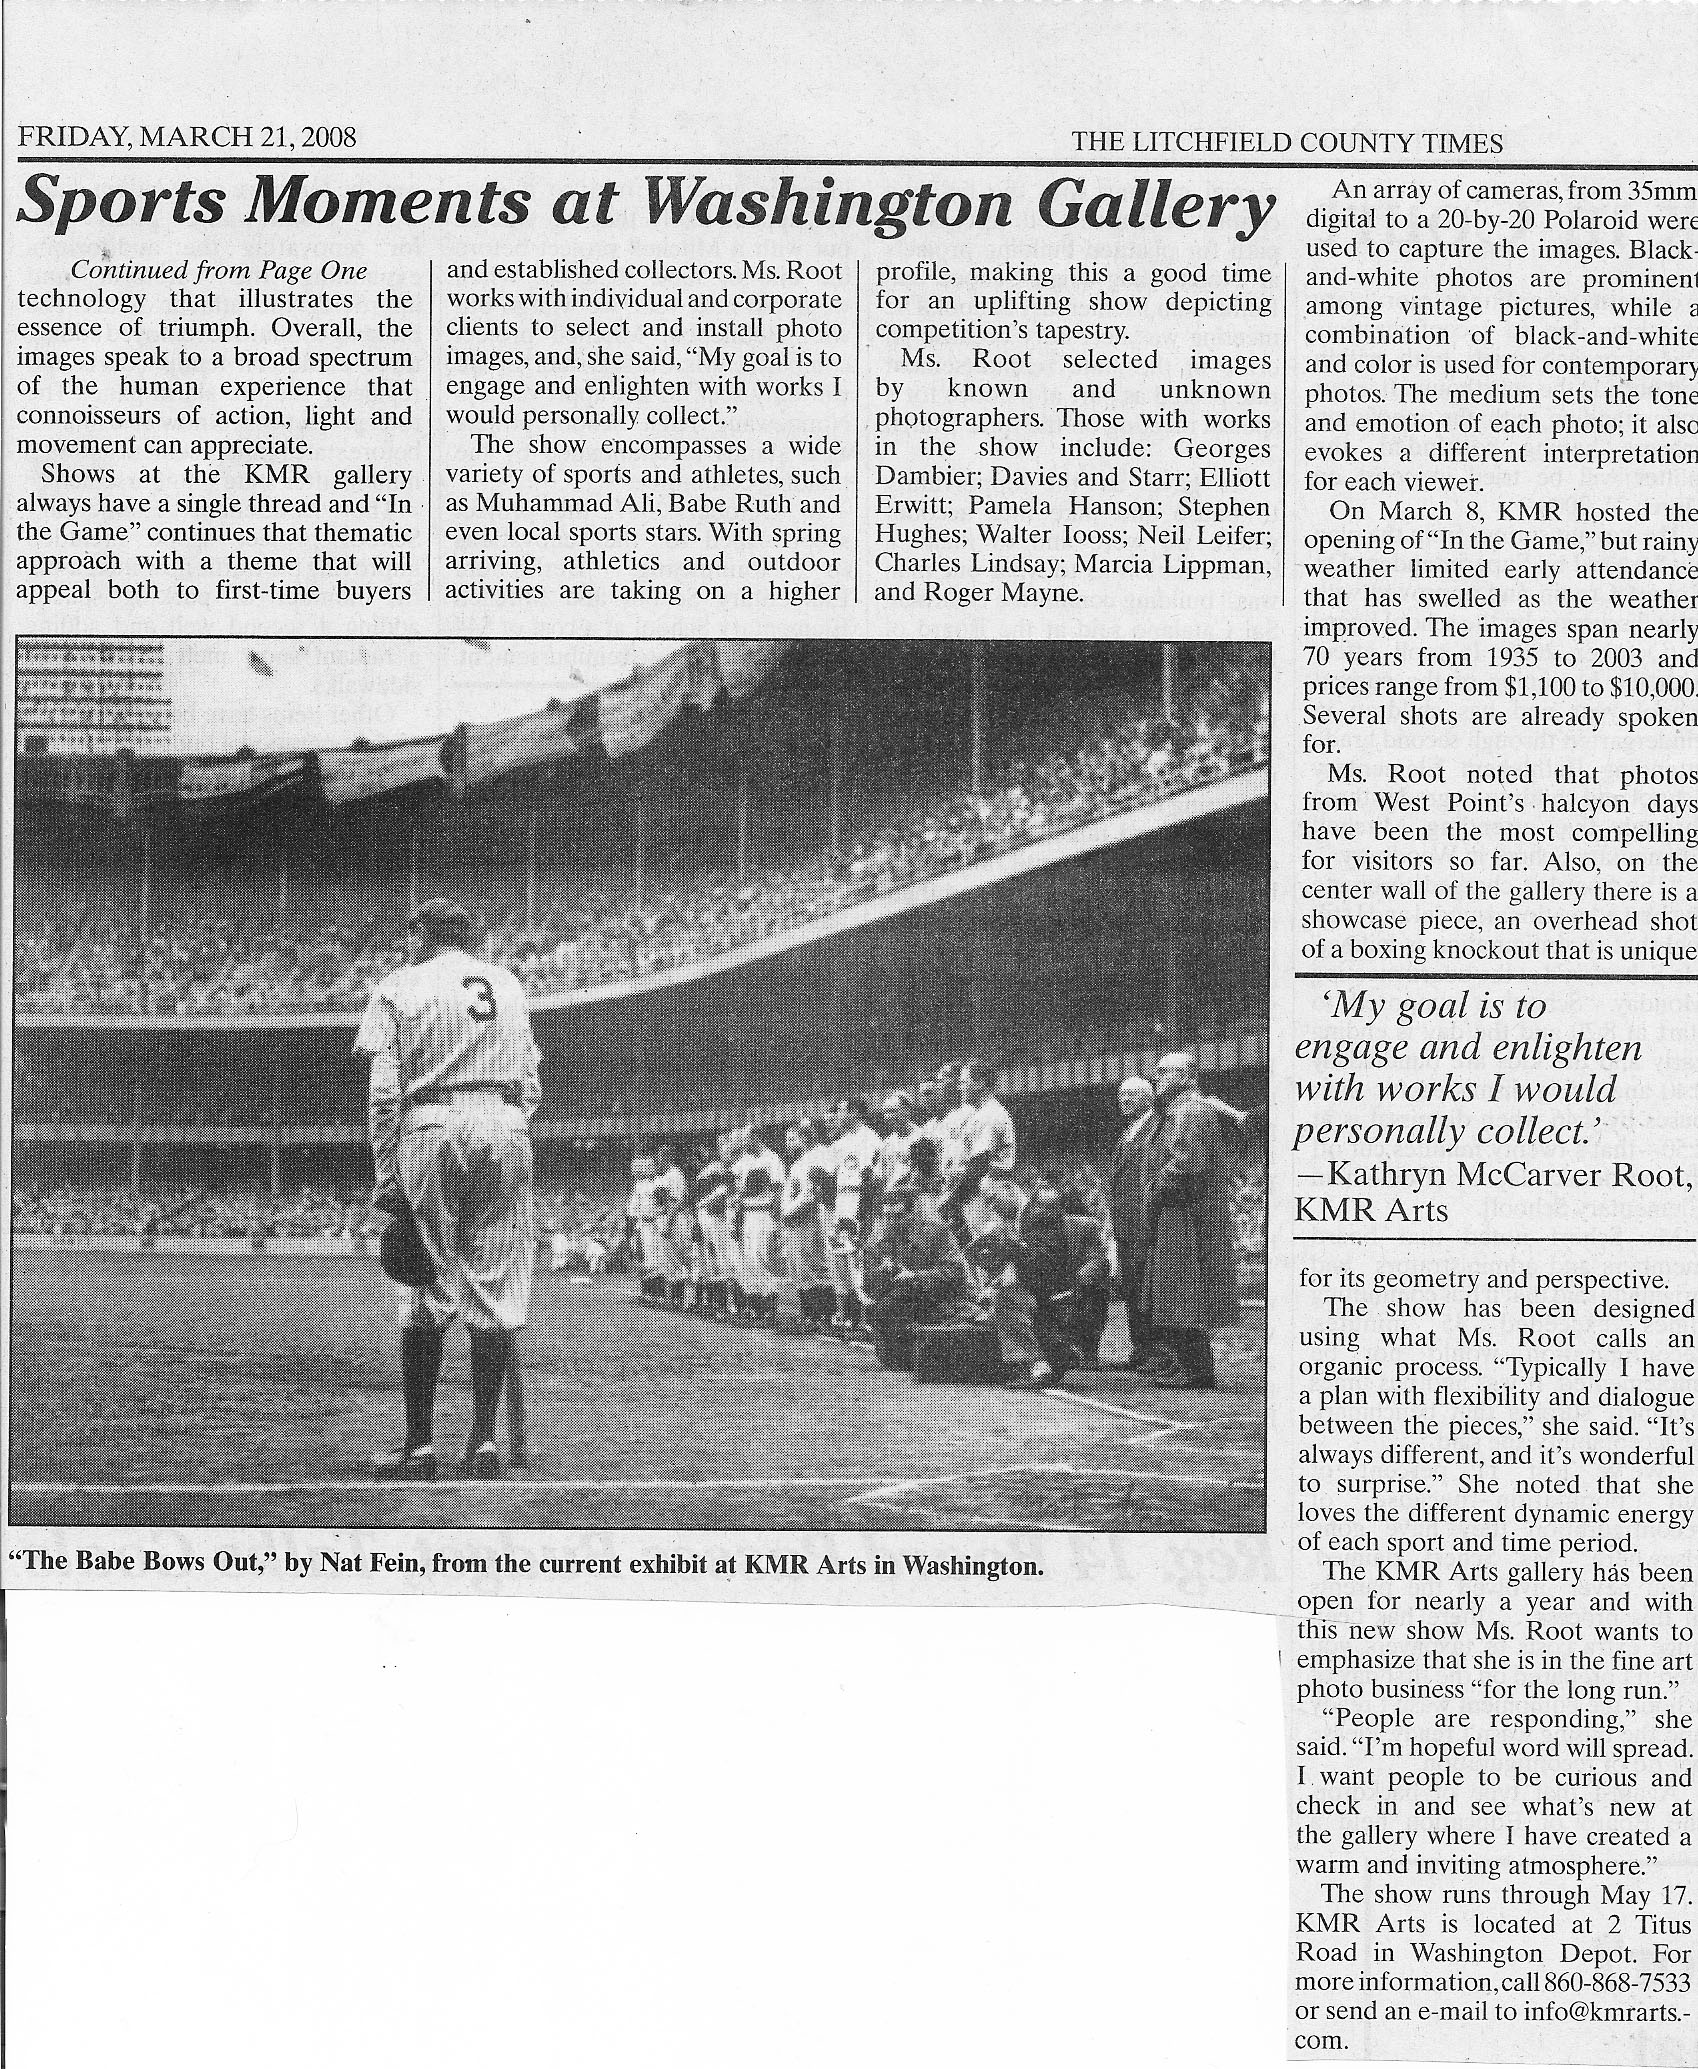 Sports Moments at Washington Gallery. March 21, 2008. The Litchfield County Times. jpg.jpg